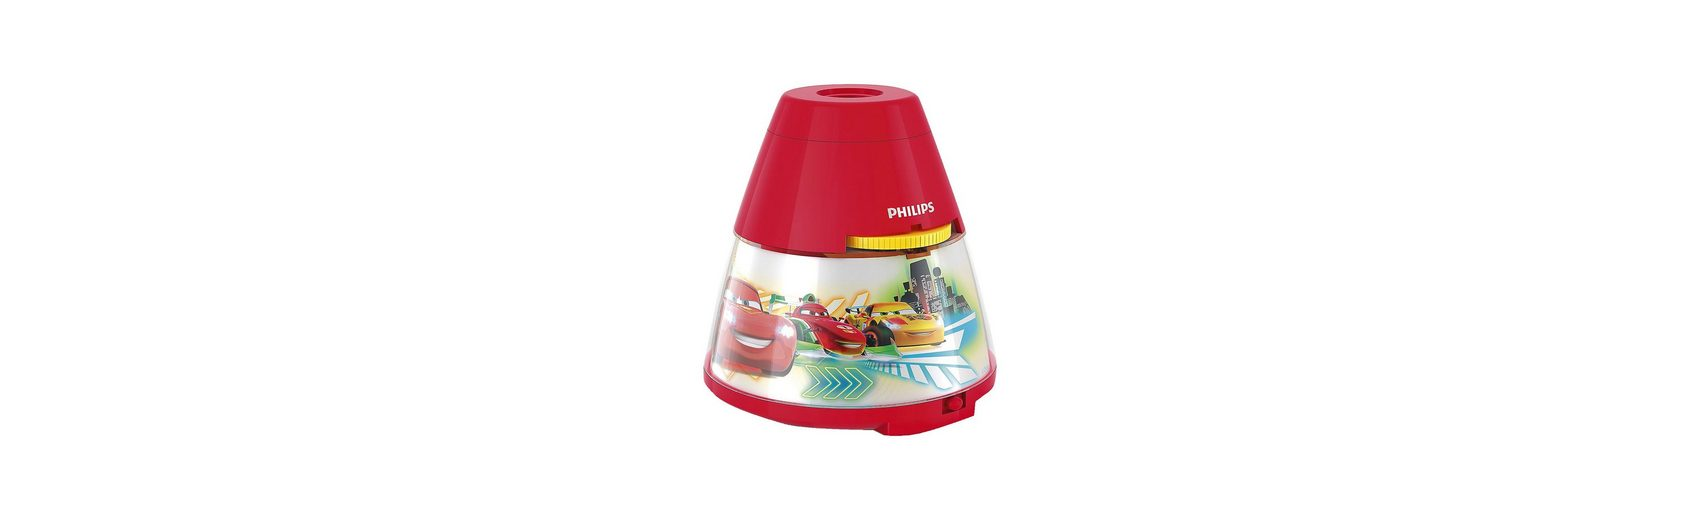 Philips Lighting Projektor Tischlampe, Disney Cars, LED